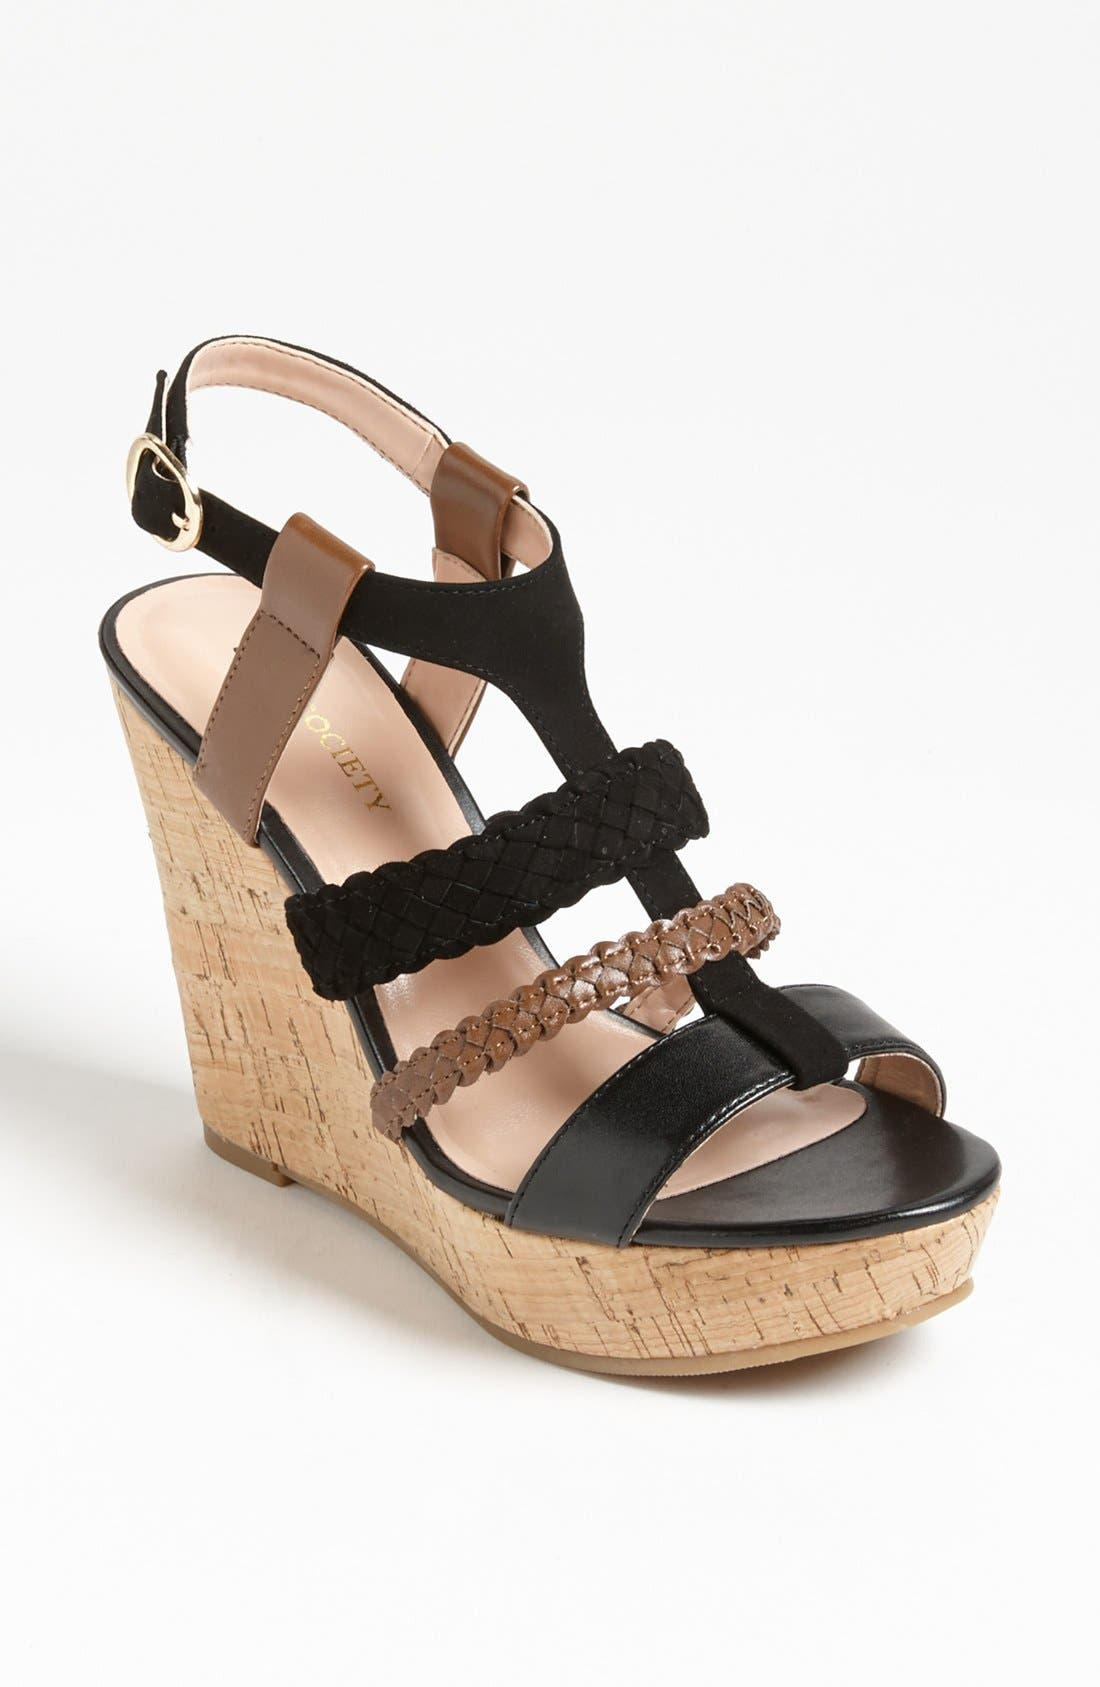 Alternate Image 1 Selected - Sole Society 'Serina' Wedge Sandal